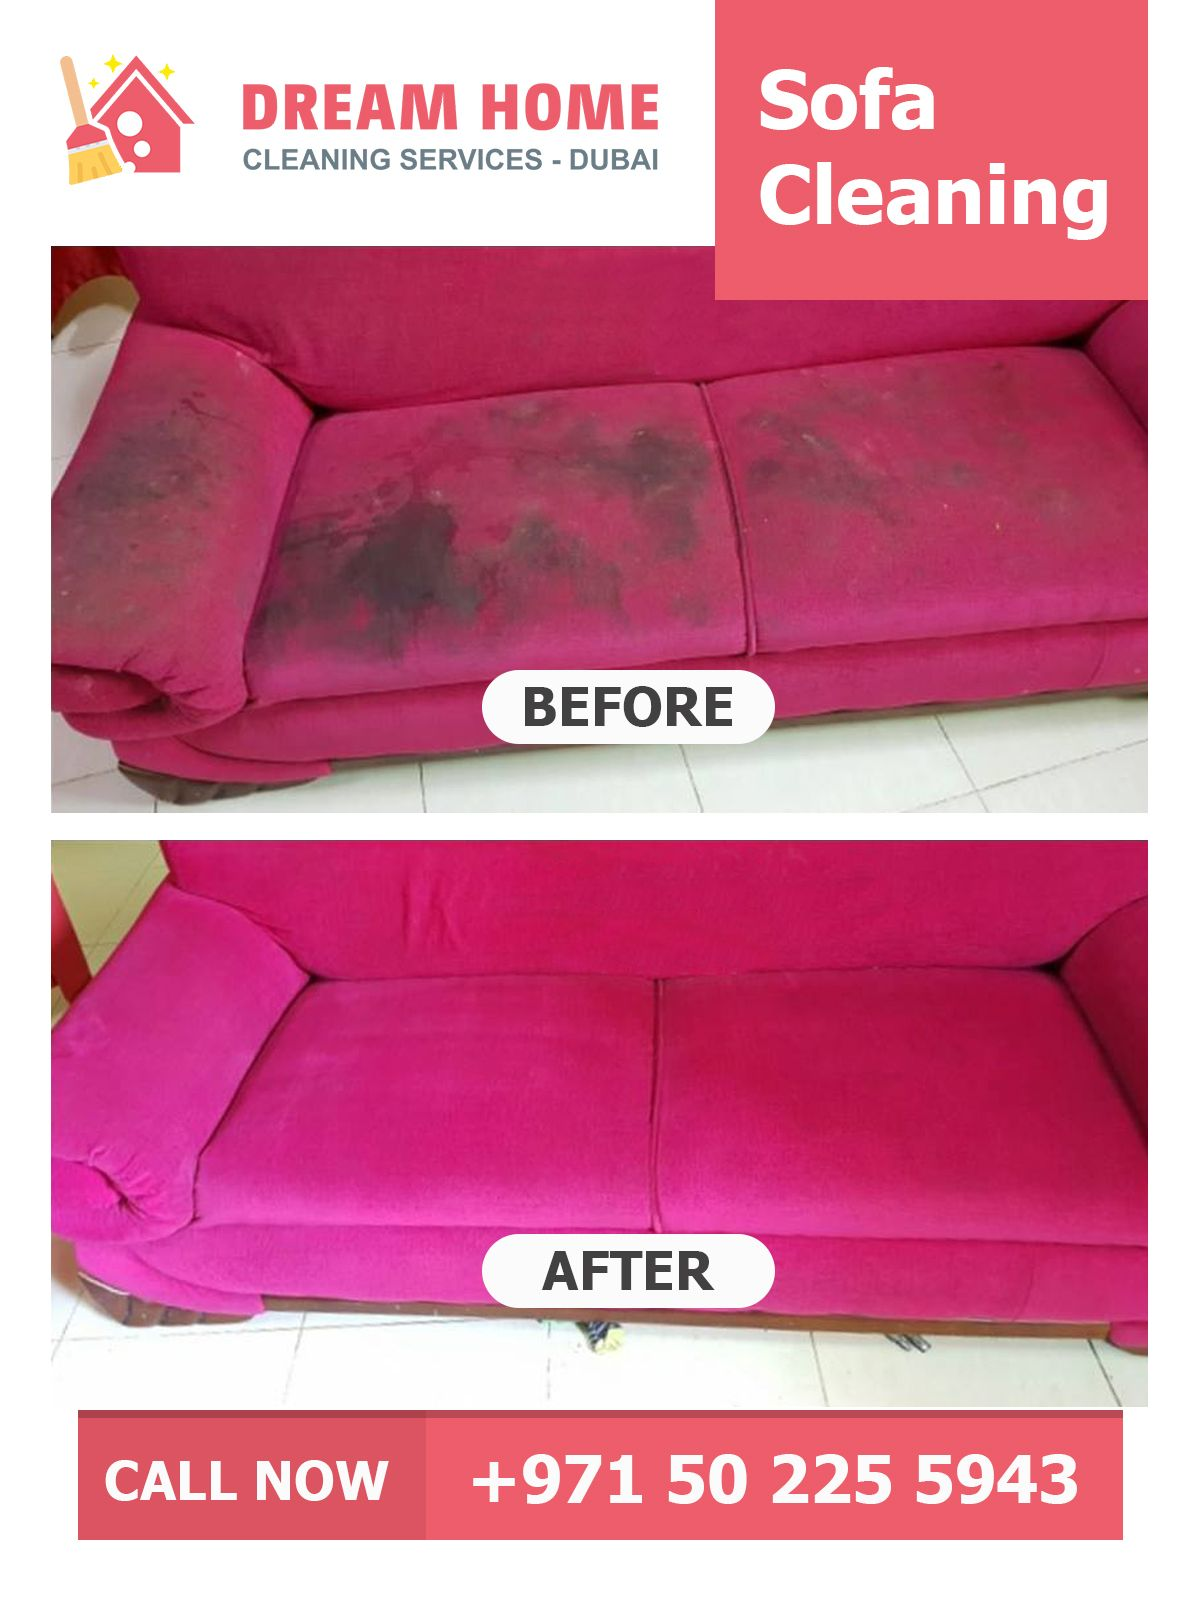 Marvelous Sofa Cleaning In Dubai Dream Home Cleaning Service Provides Machost Co Dining Chair Design Ideas Machostcouk